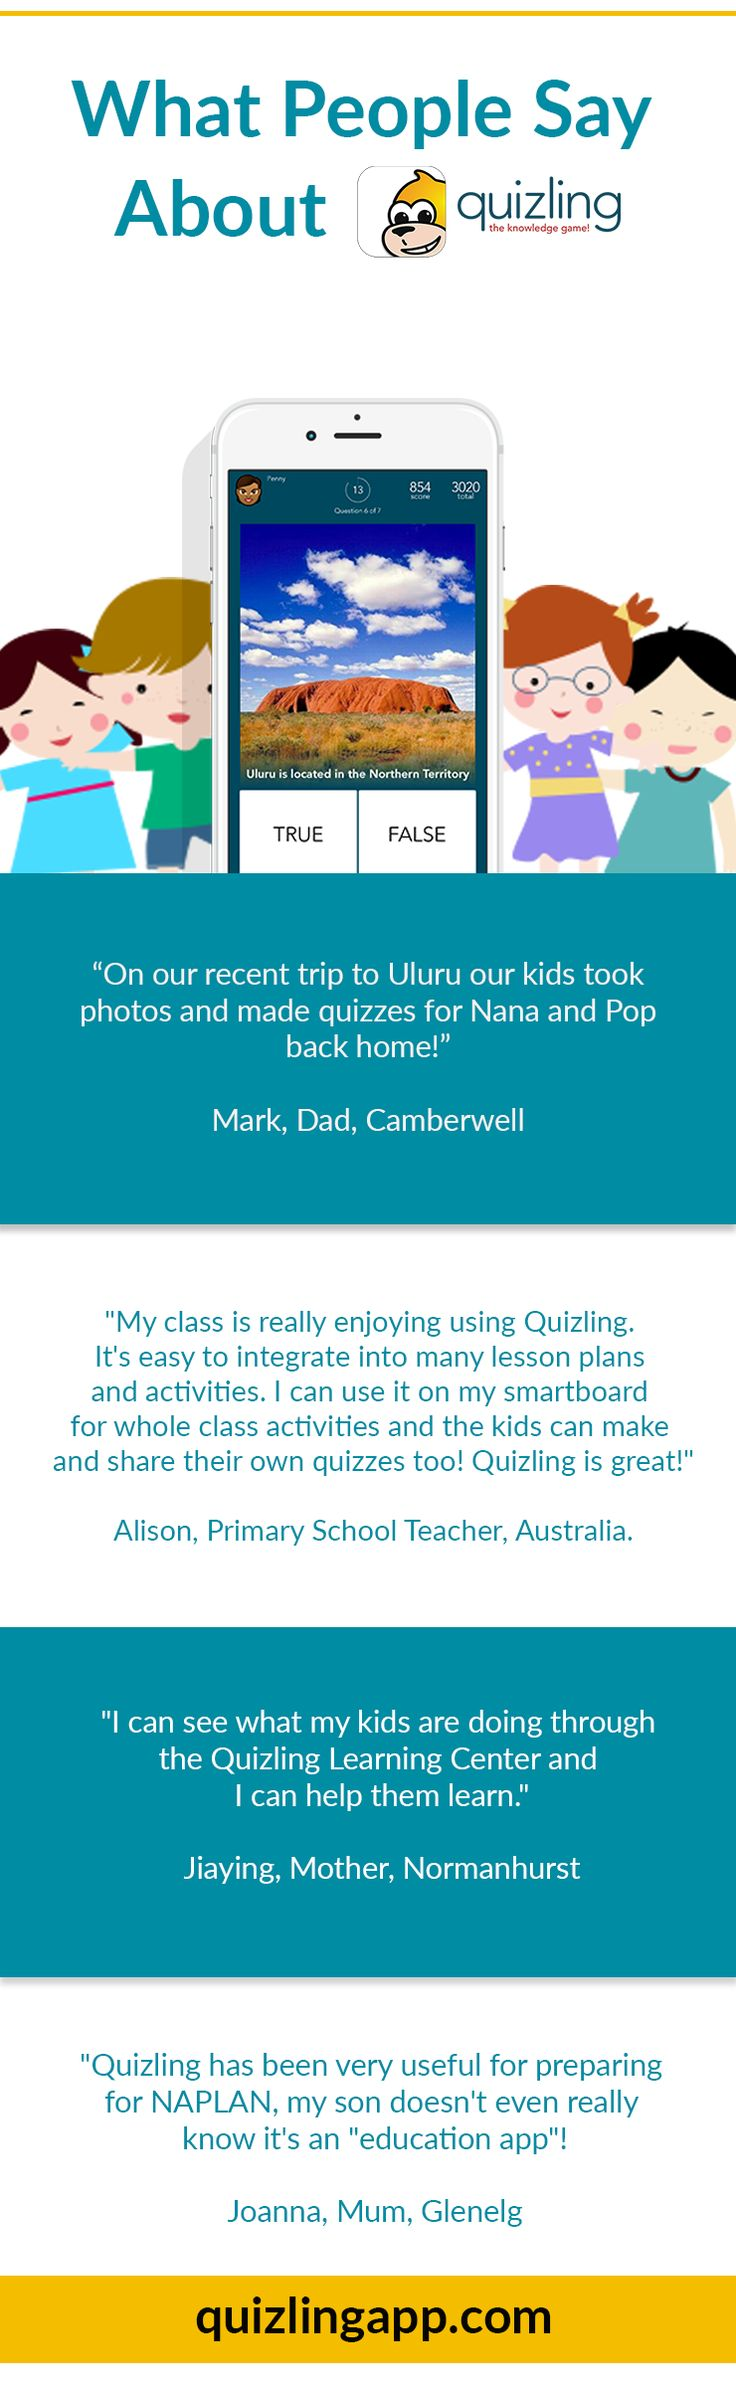 We love hearing what people thunk  about Quizling because it inspires us to do better. Quizling is a FREE educational technology app for teachers, parents and students to play, share and create their own quizzes!  It's easy to use and an excellent way to use edtech to engage students in the classroom.